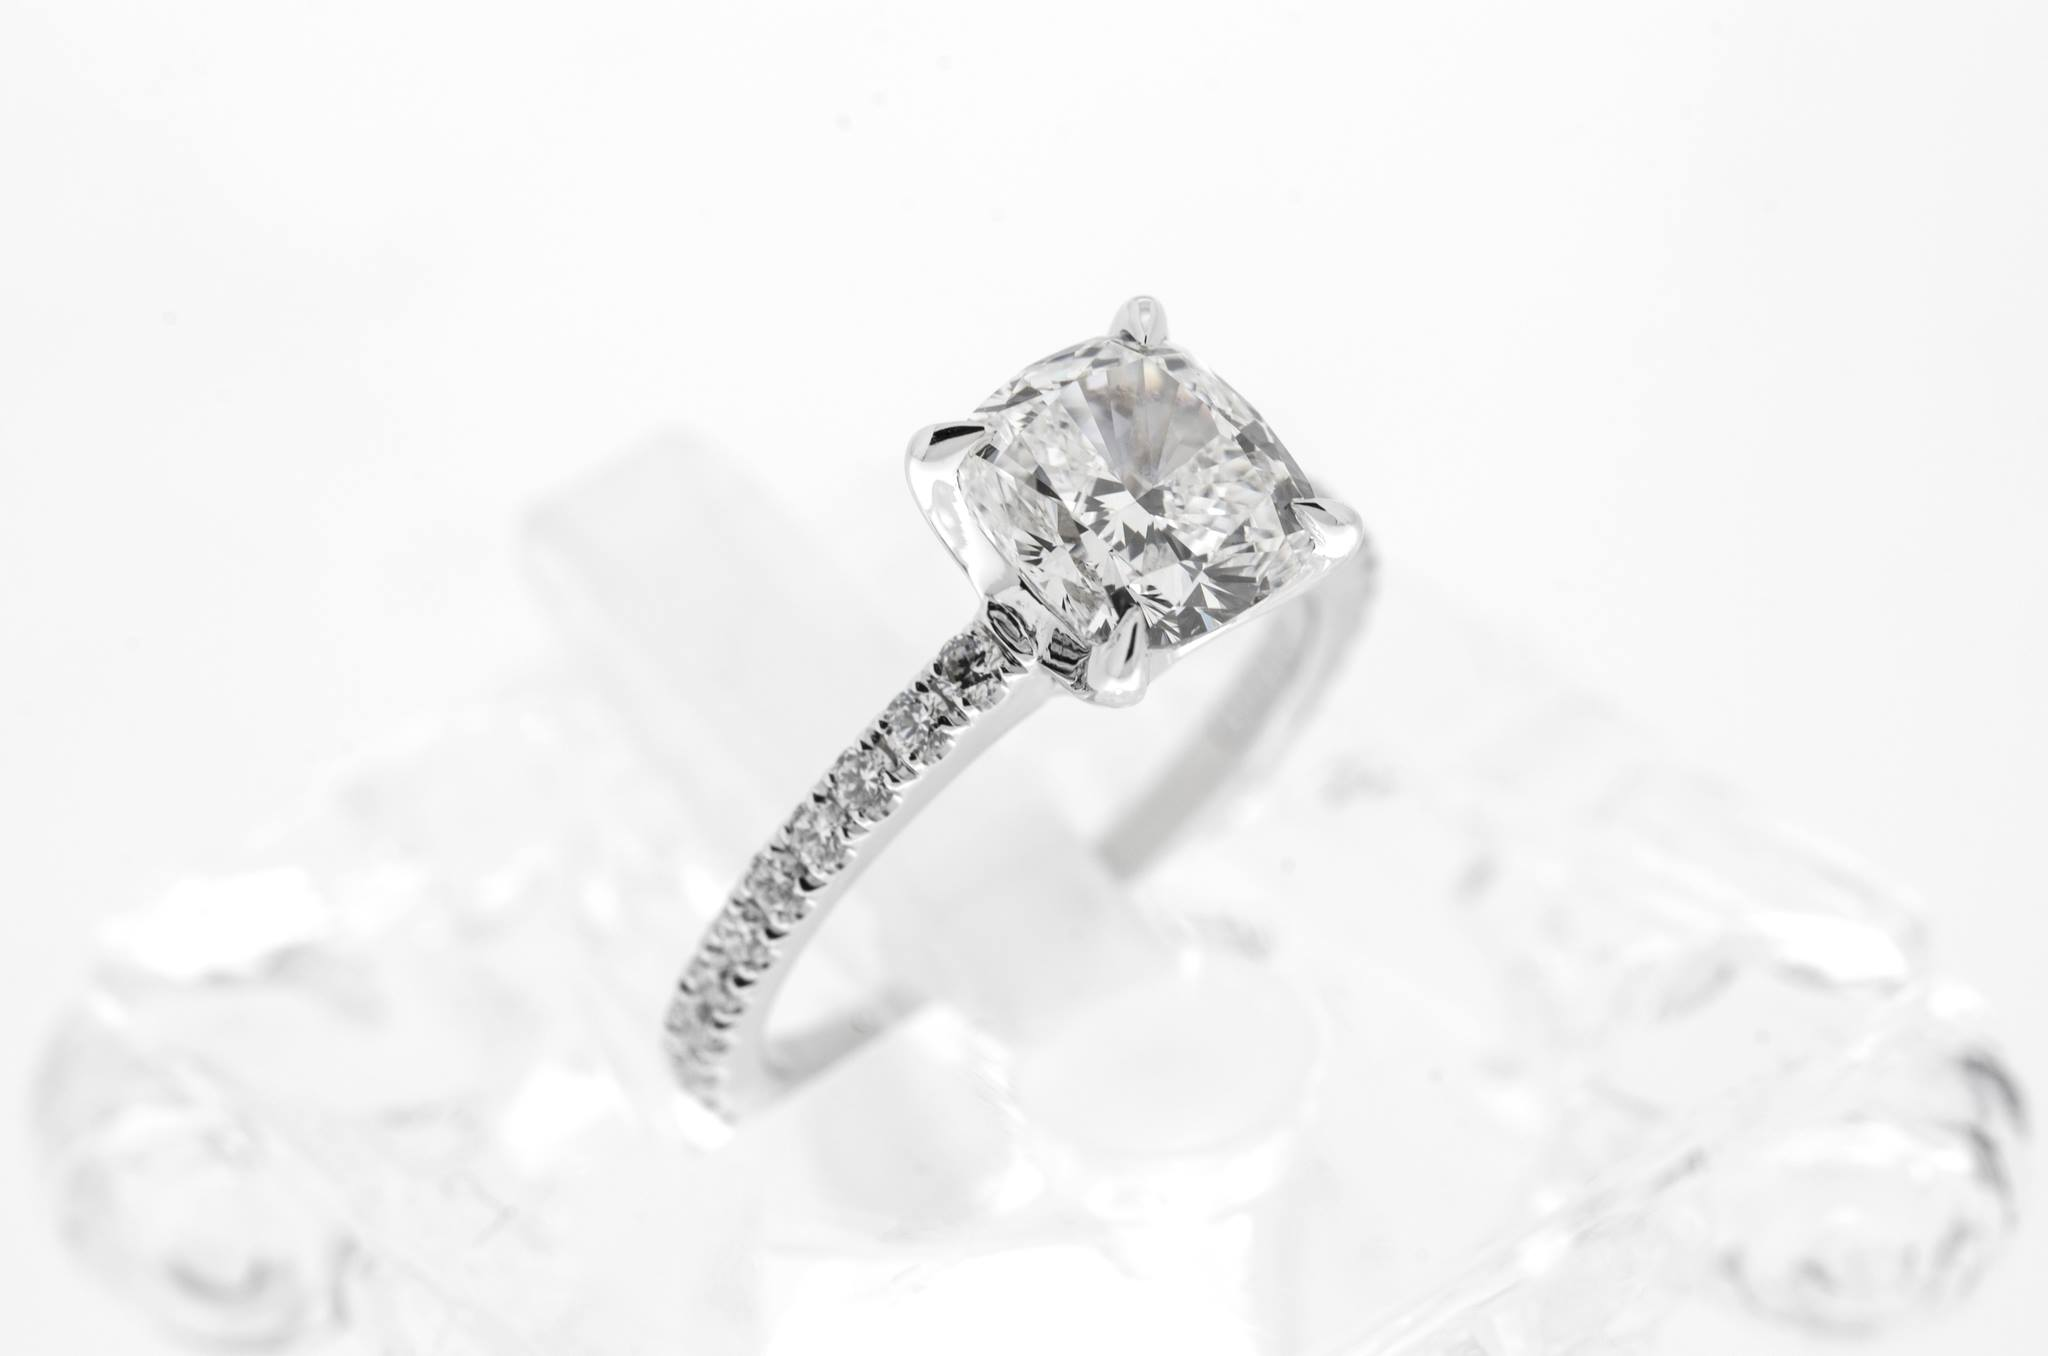 THESEOS specializes in custom-crafted engagement rings, prizing ourselves on premium quality at the fairest prices you'll find in the Diamond District.* - *All consultations & showings conducted on a private, 1-on-1 basis only.